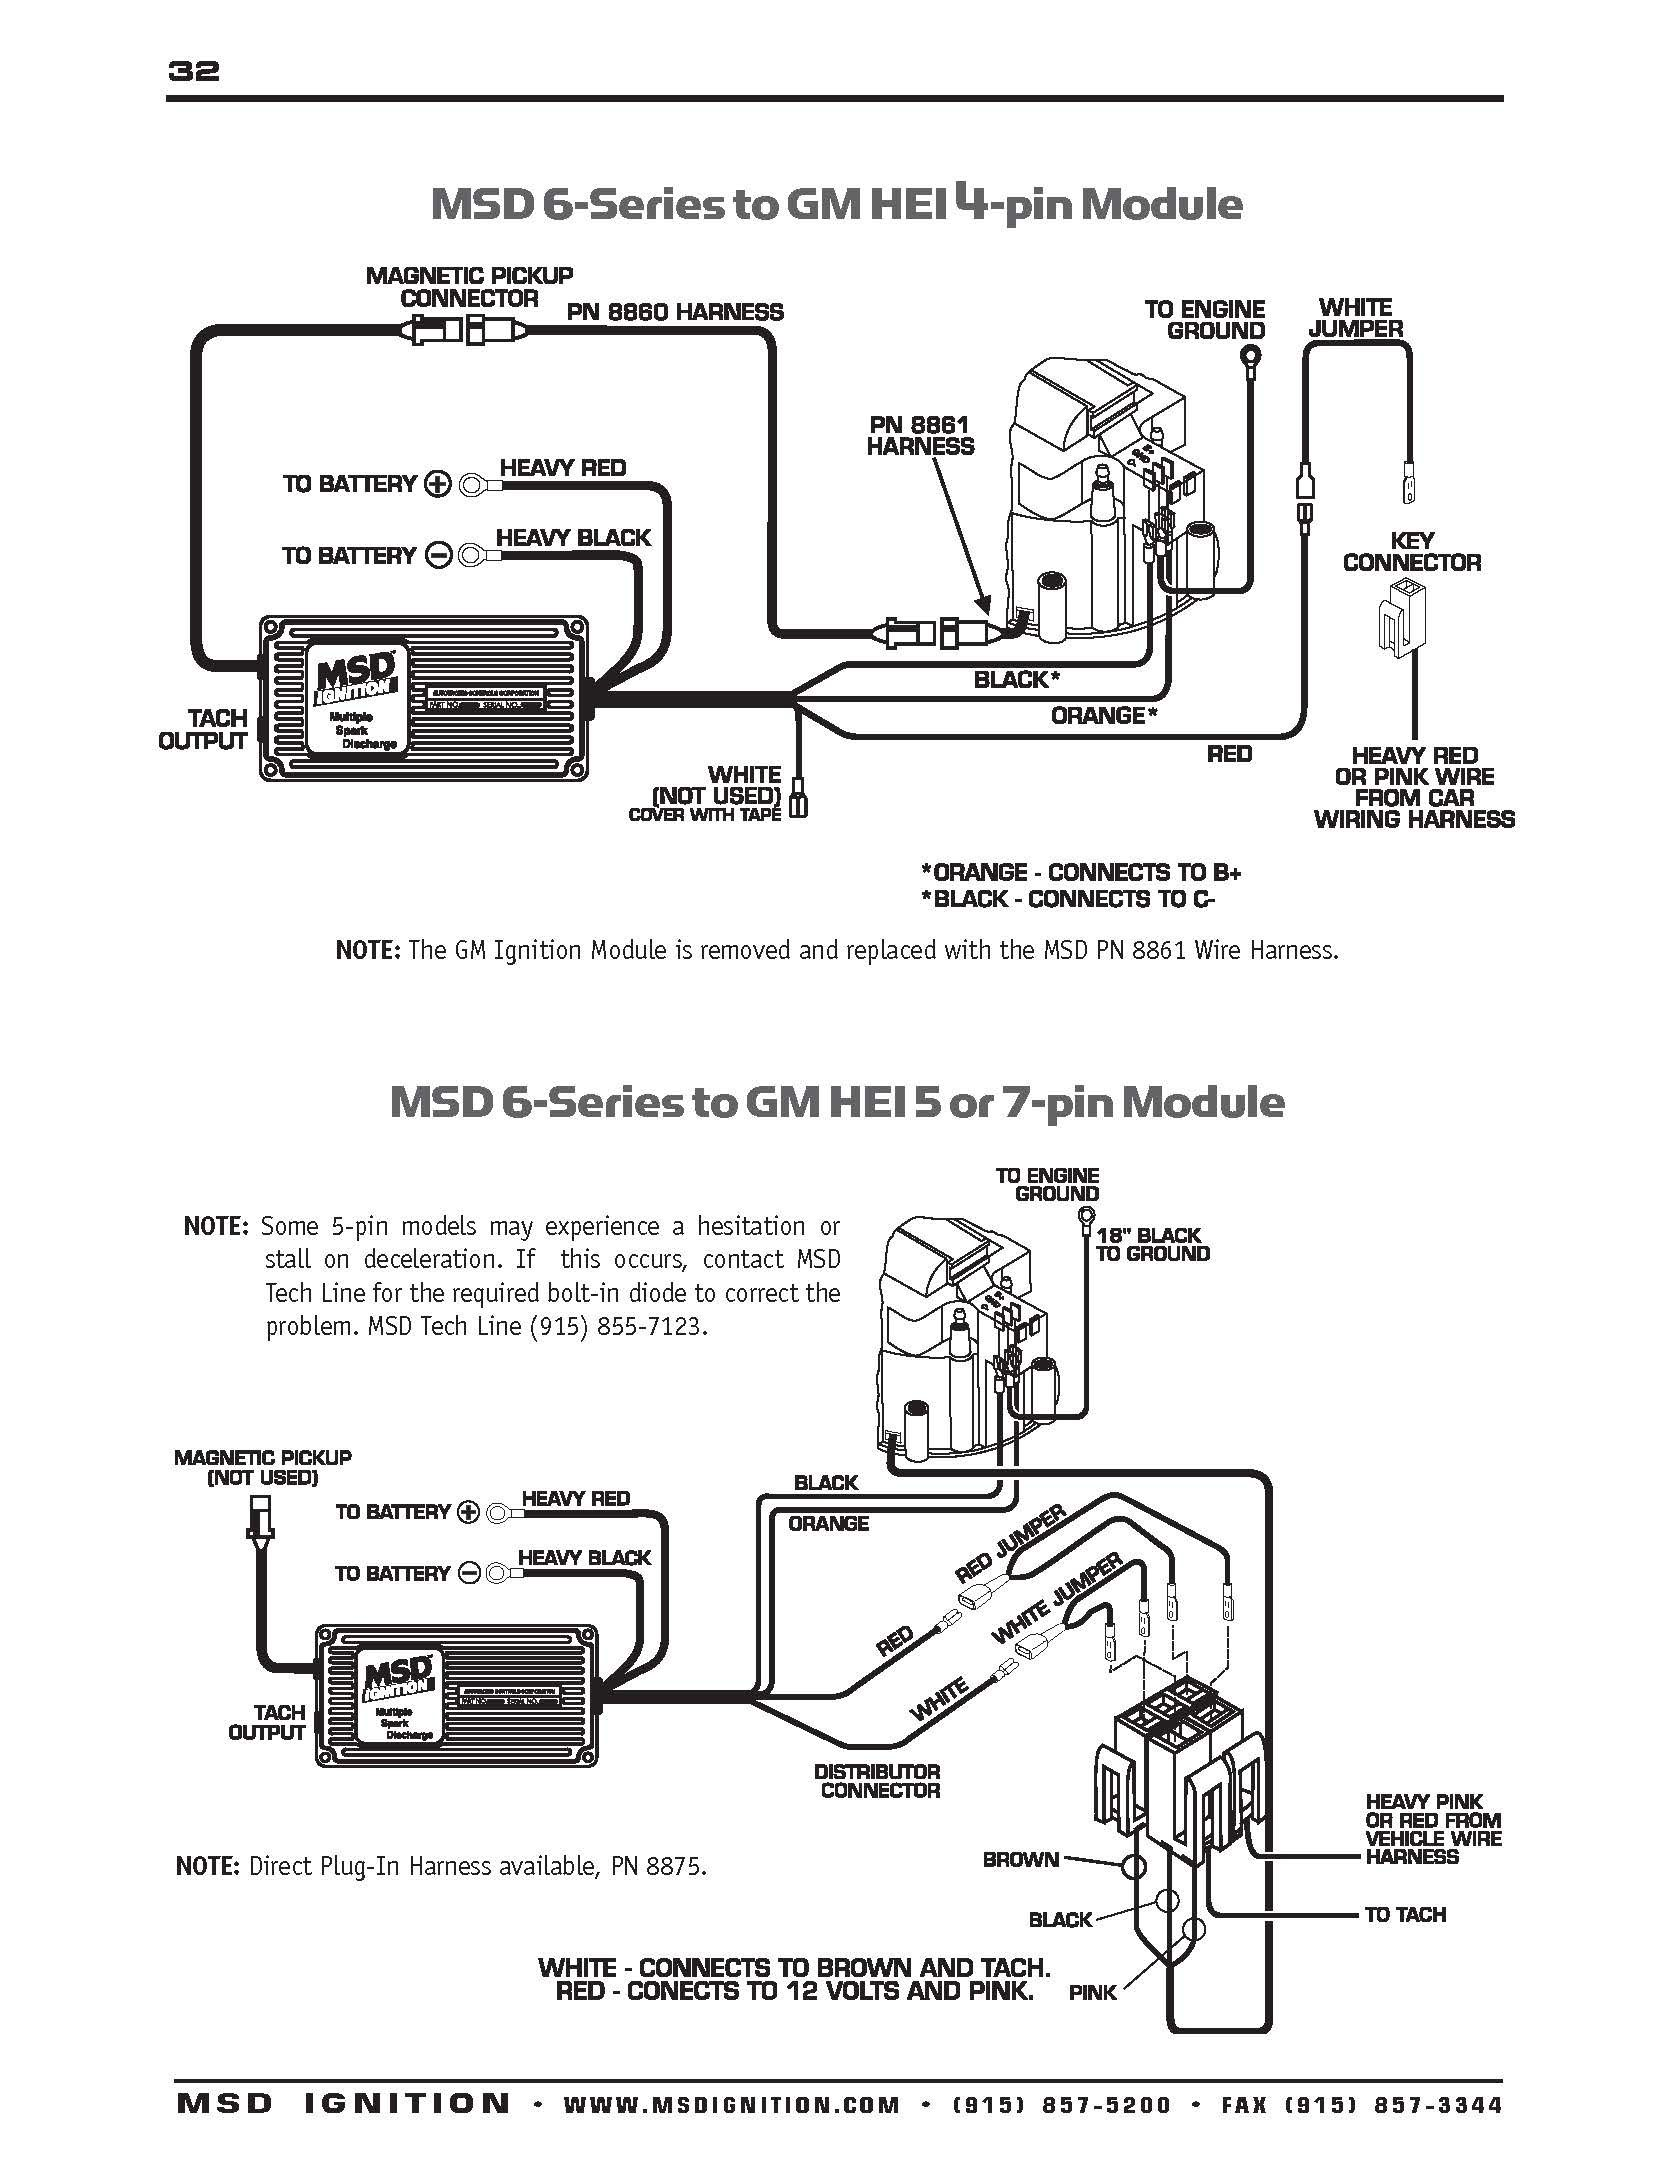 Chevy Ignition Wiring Diagram | Wiring Diagram on toyota starter wiring diagram, mustang starter wiring diagram, 1977 corvette starter wiring diagram, pontiac starter wiring diagram, john deere starter wiring diagram, geo starter wiring diagram, gmc starter wiring diagram, motor starter wiring diagram, f150 starter wiring diagram, porsche 911 starter wiring diagram, dodge starter wiring diagram, powermaster starter wiring diagram, chrysler starter wiring diagram, international starter wiring diagram, hi-torque starter wiring diagram, oldsmobile starter wiring diagram, 1976 corvette starter wiring diagram, mgb starter wiring diagram, jeep grand cherokee starter wiring diagram, mitsubishi starter wiring diagram,